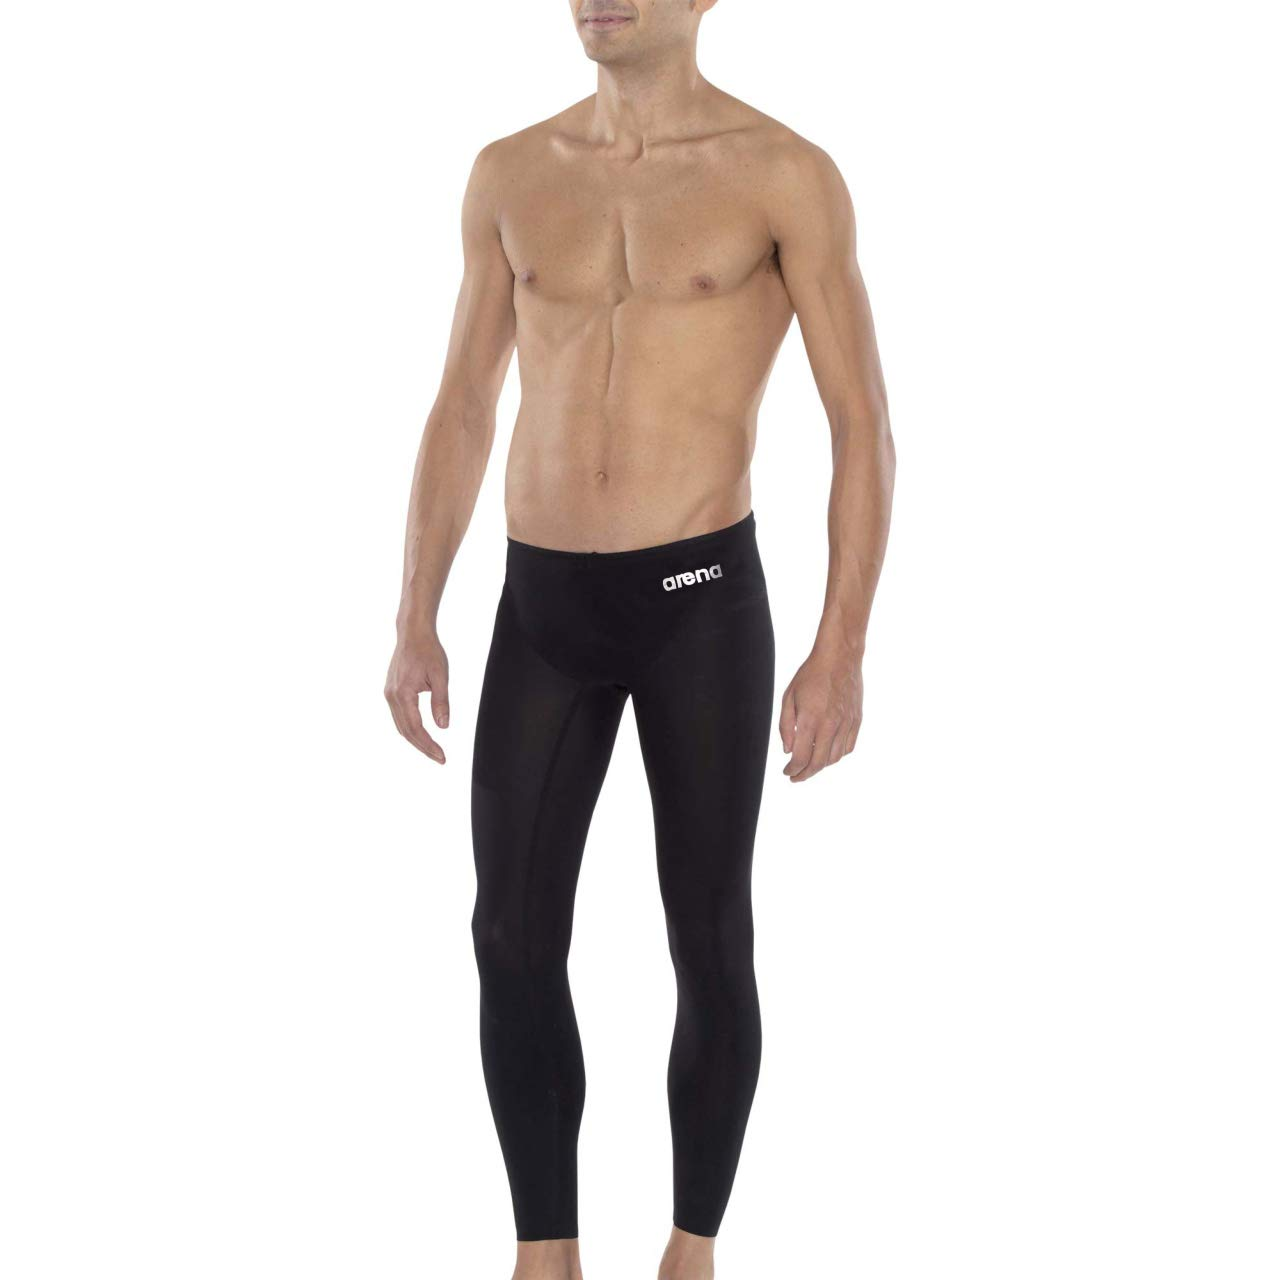 Arena Powerskin R-Evo SL Open Water Pant, Black, 24 by Arena (Image #1)